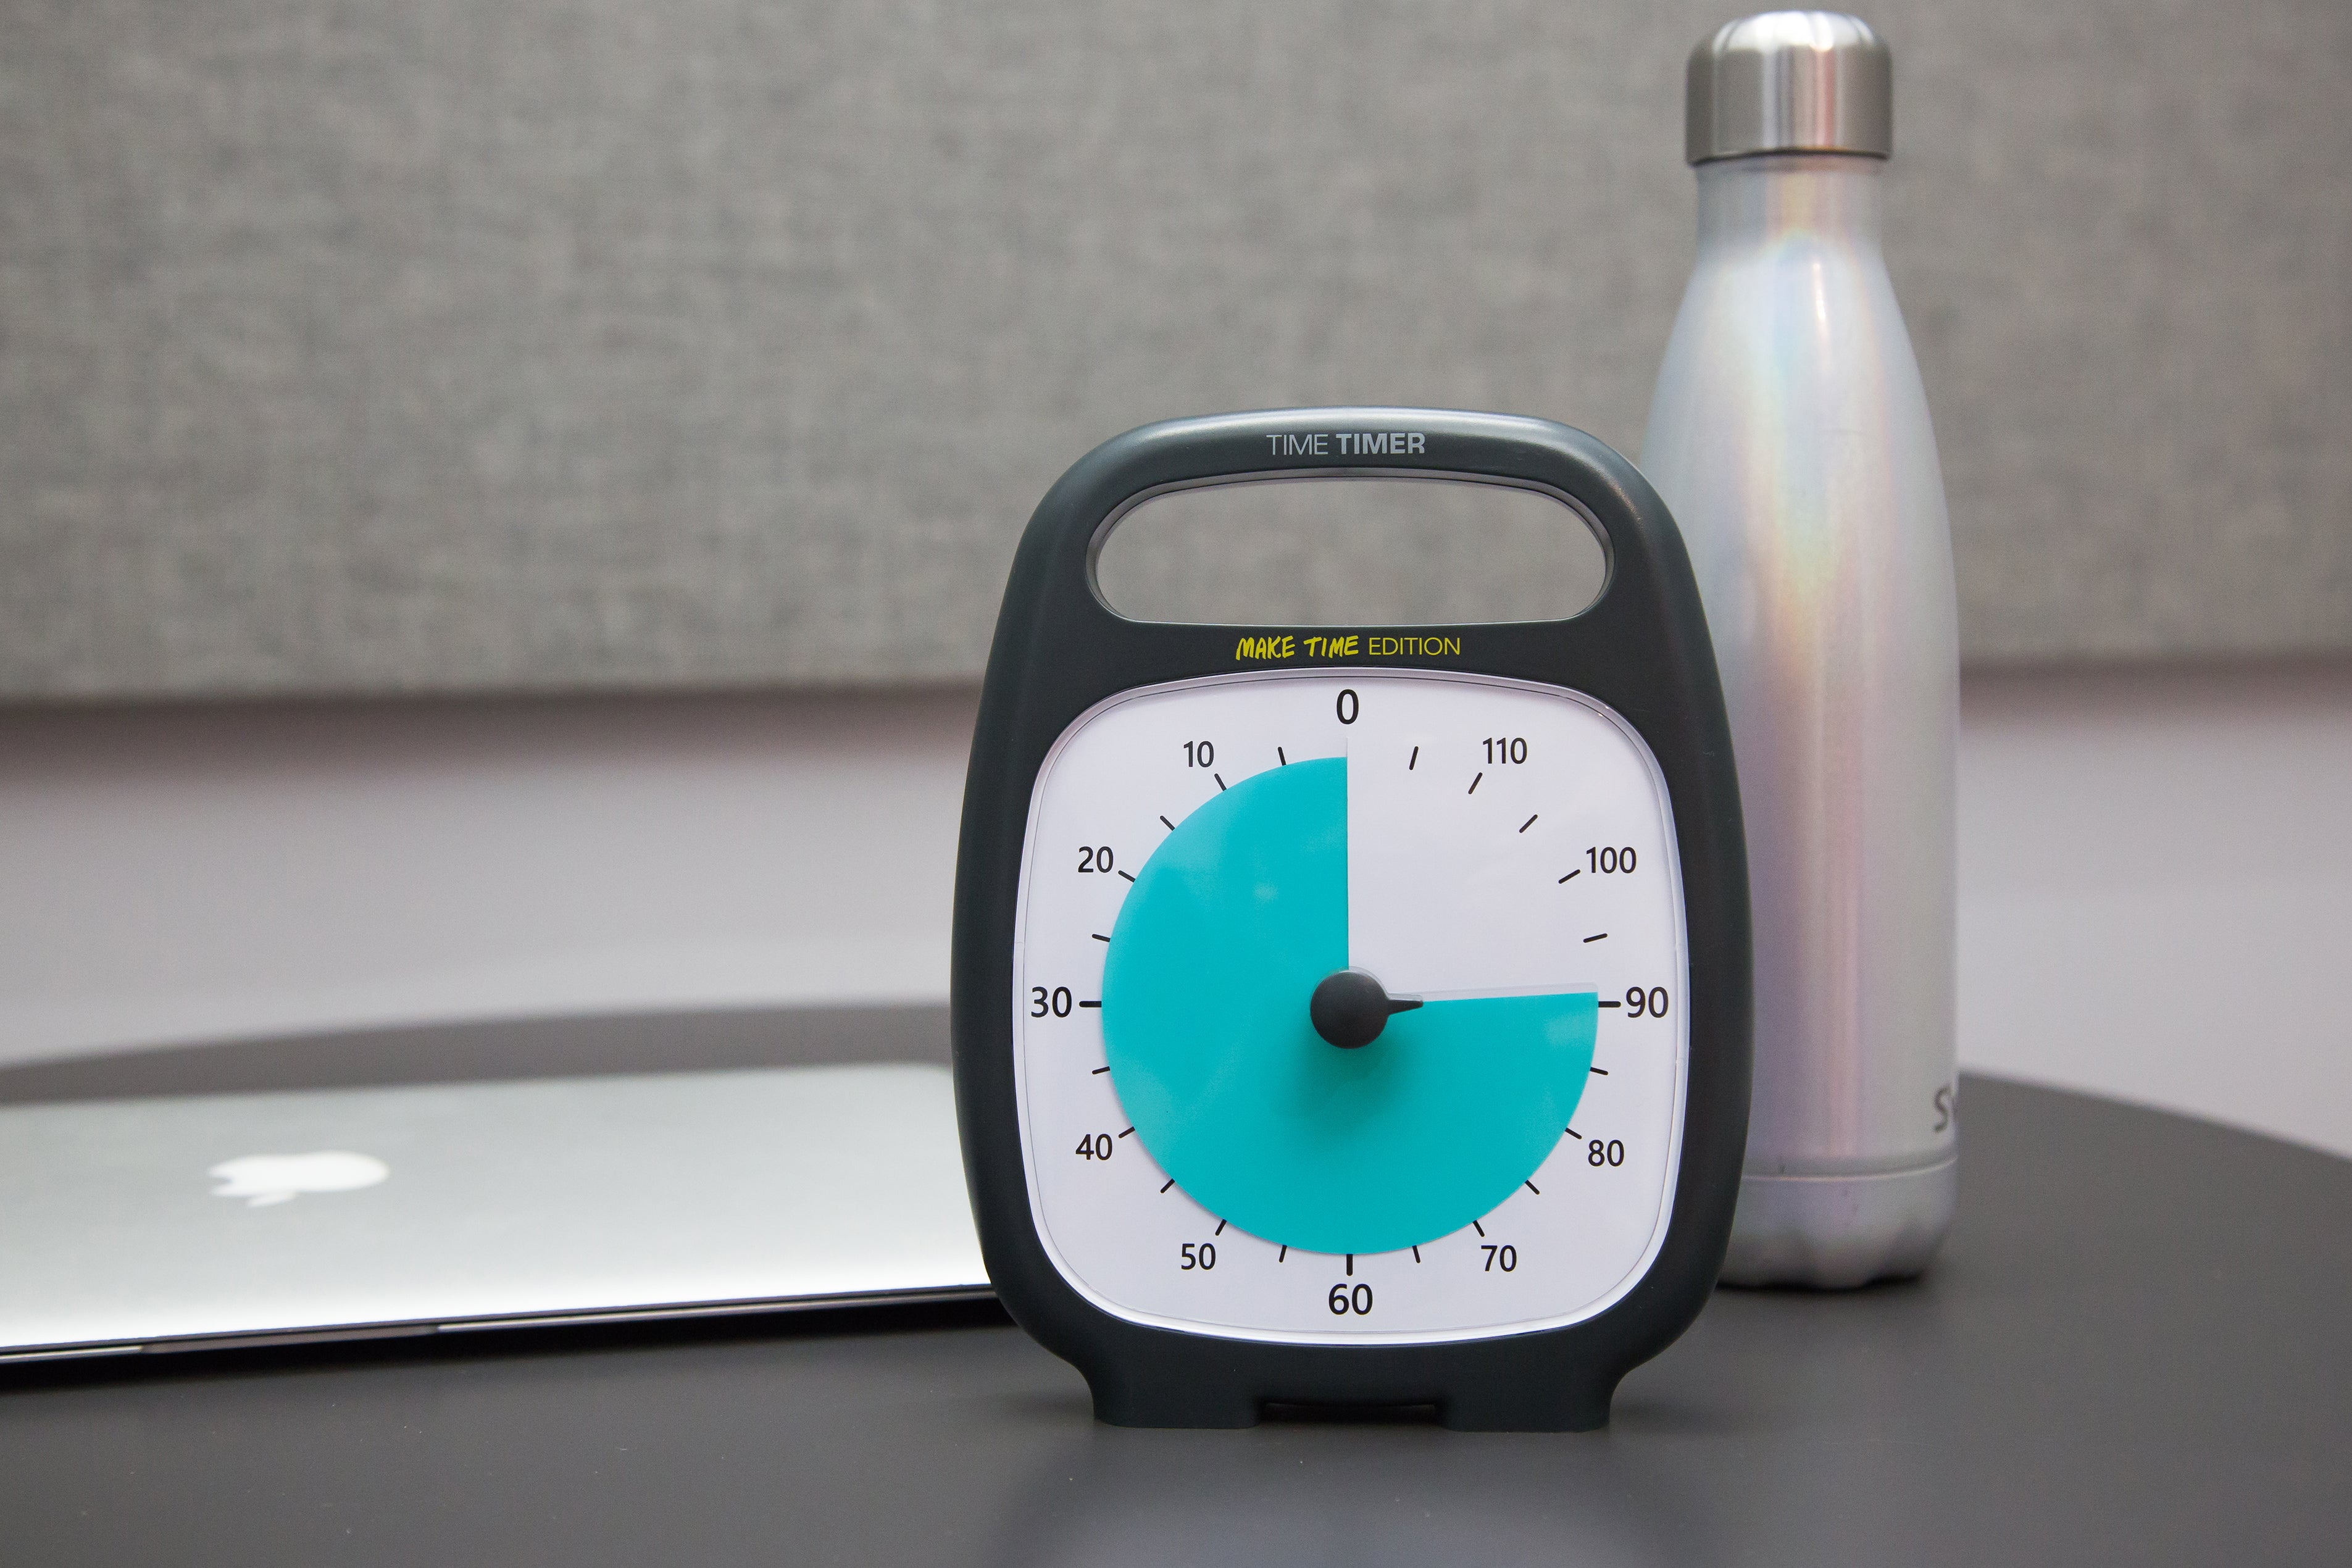 Time Timer Make time edition is great for office use.